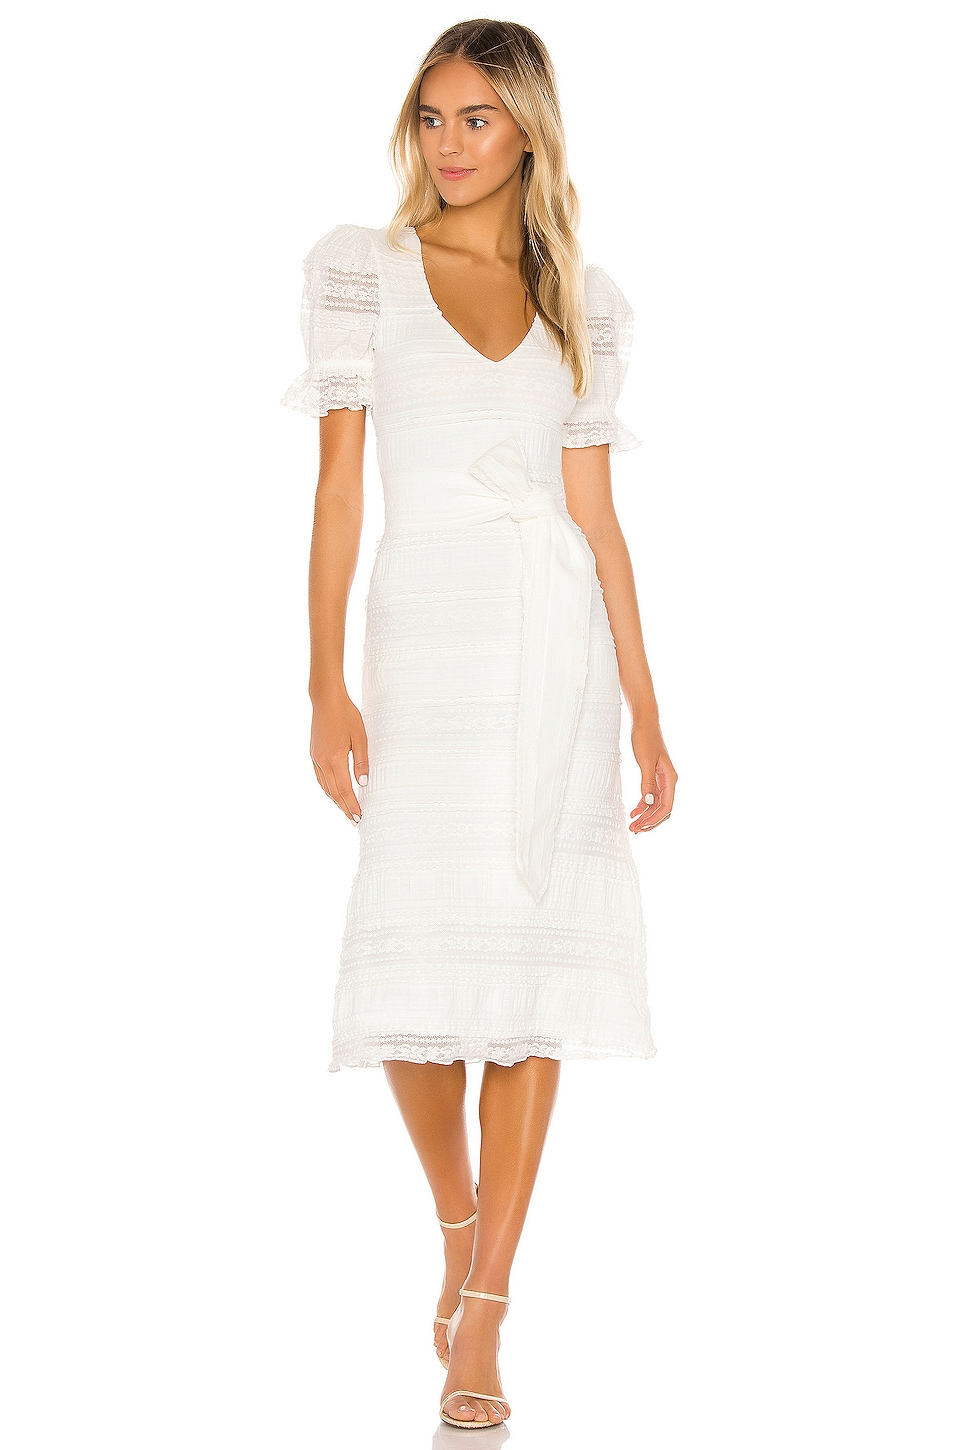 Quinn Midi Dress             Tularosa                                                                                                       CA$ 235.91 14